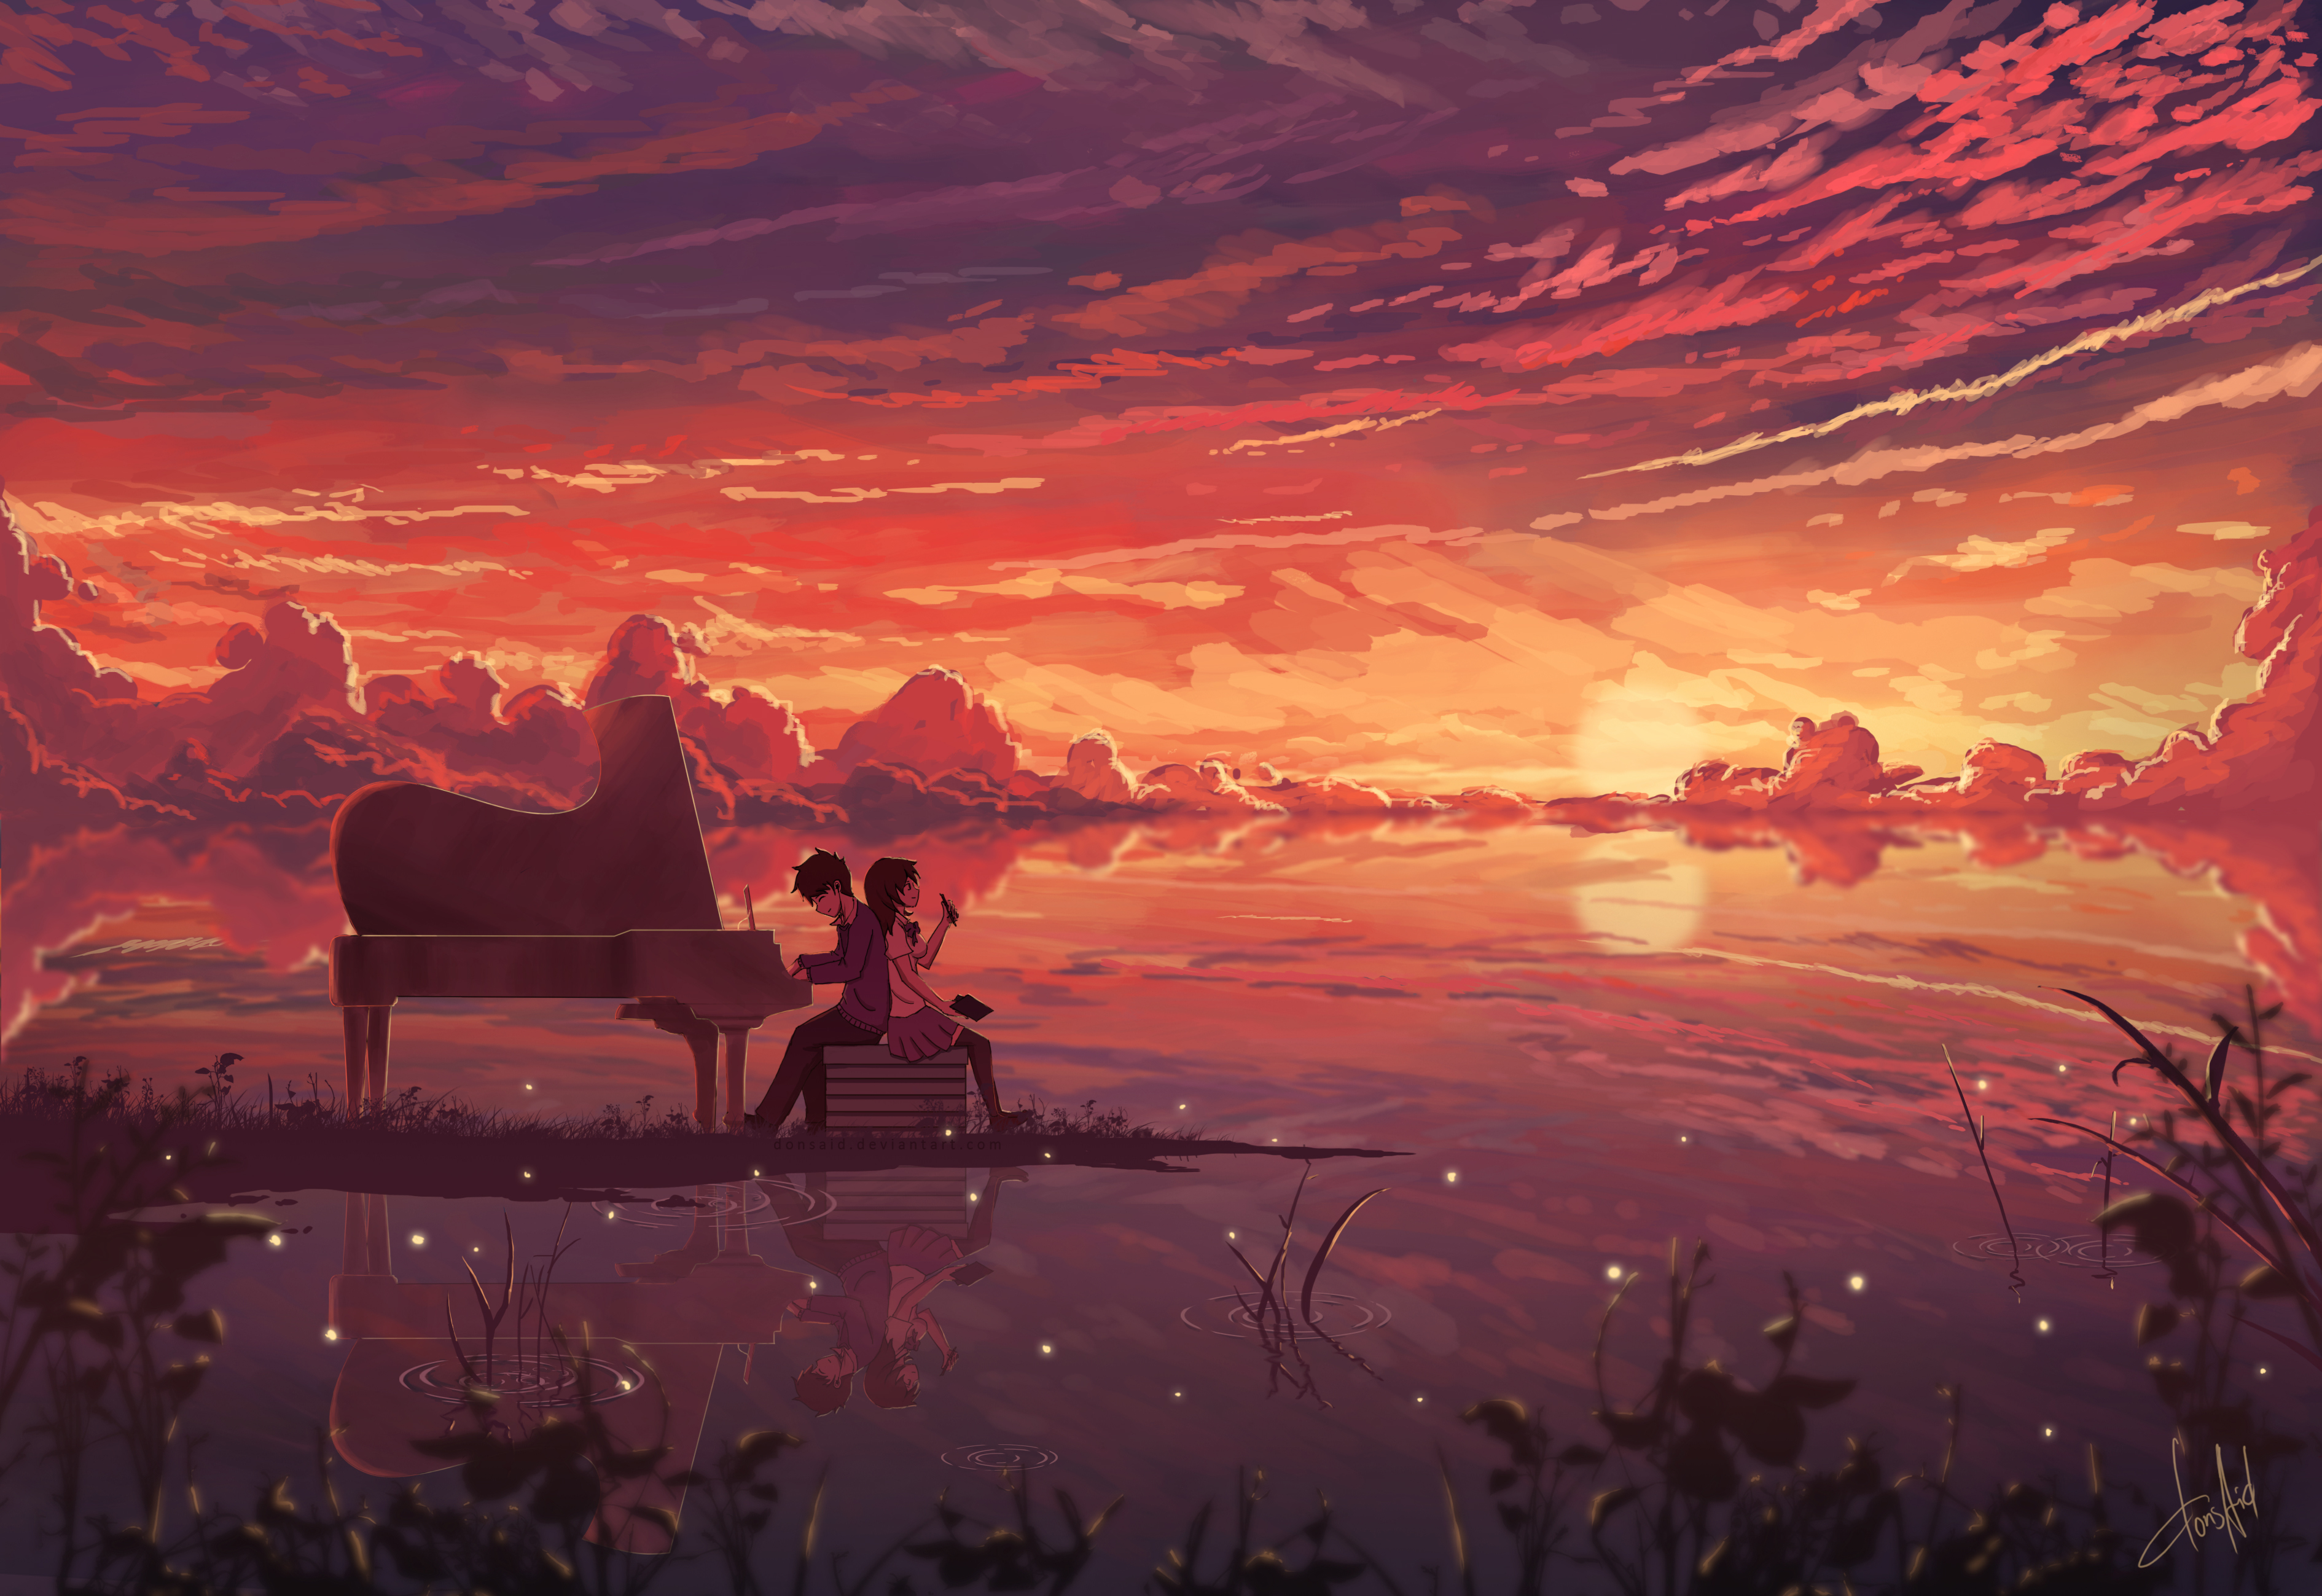 181 Piano Hd Wallpapers Background Images Wallpaper Abyss